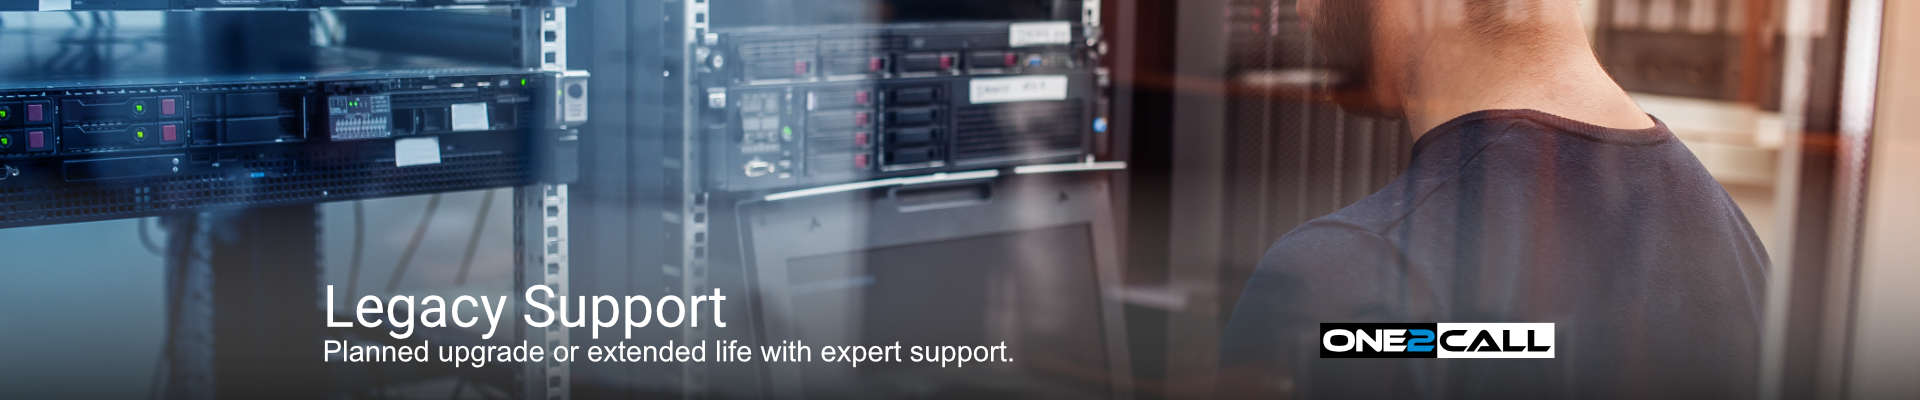 Legacy PBX Support - Planned upgrade or extended life with expert support.